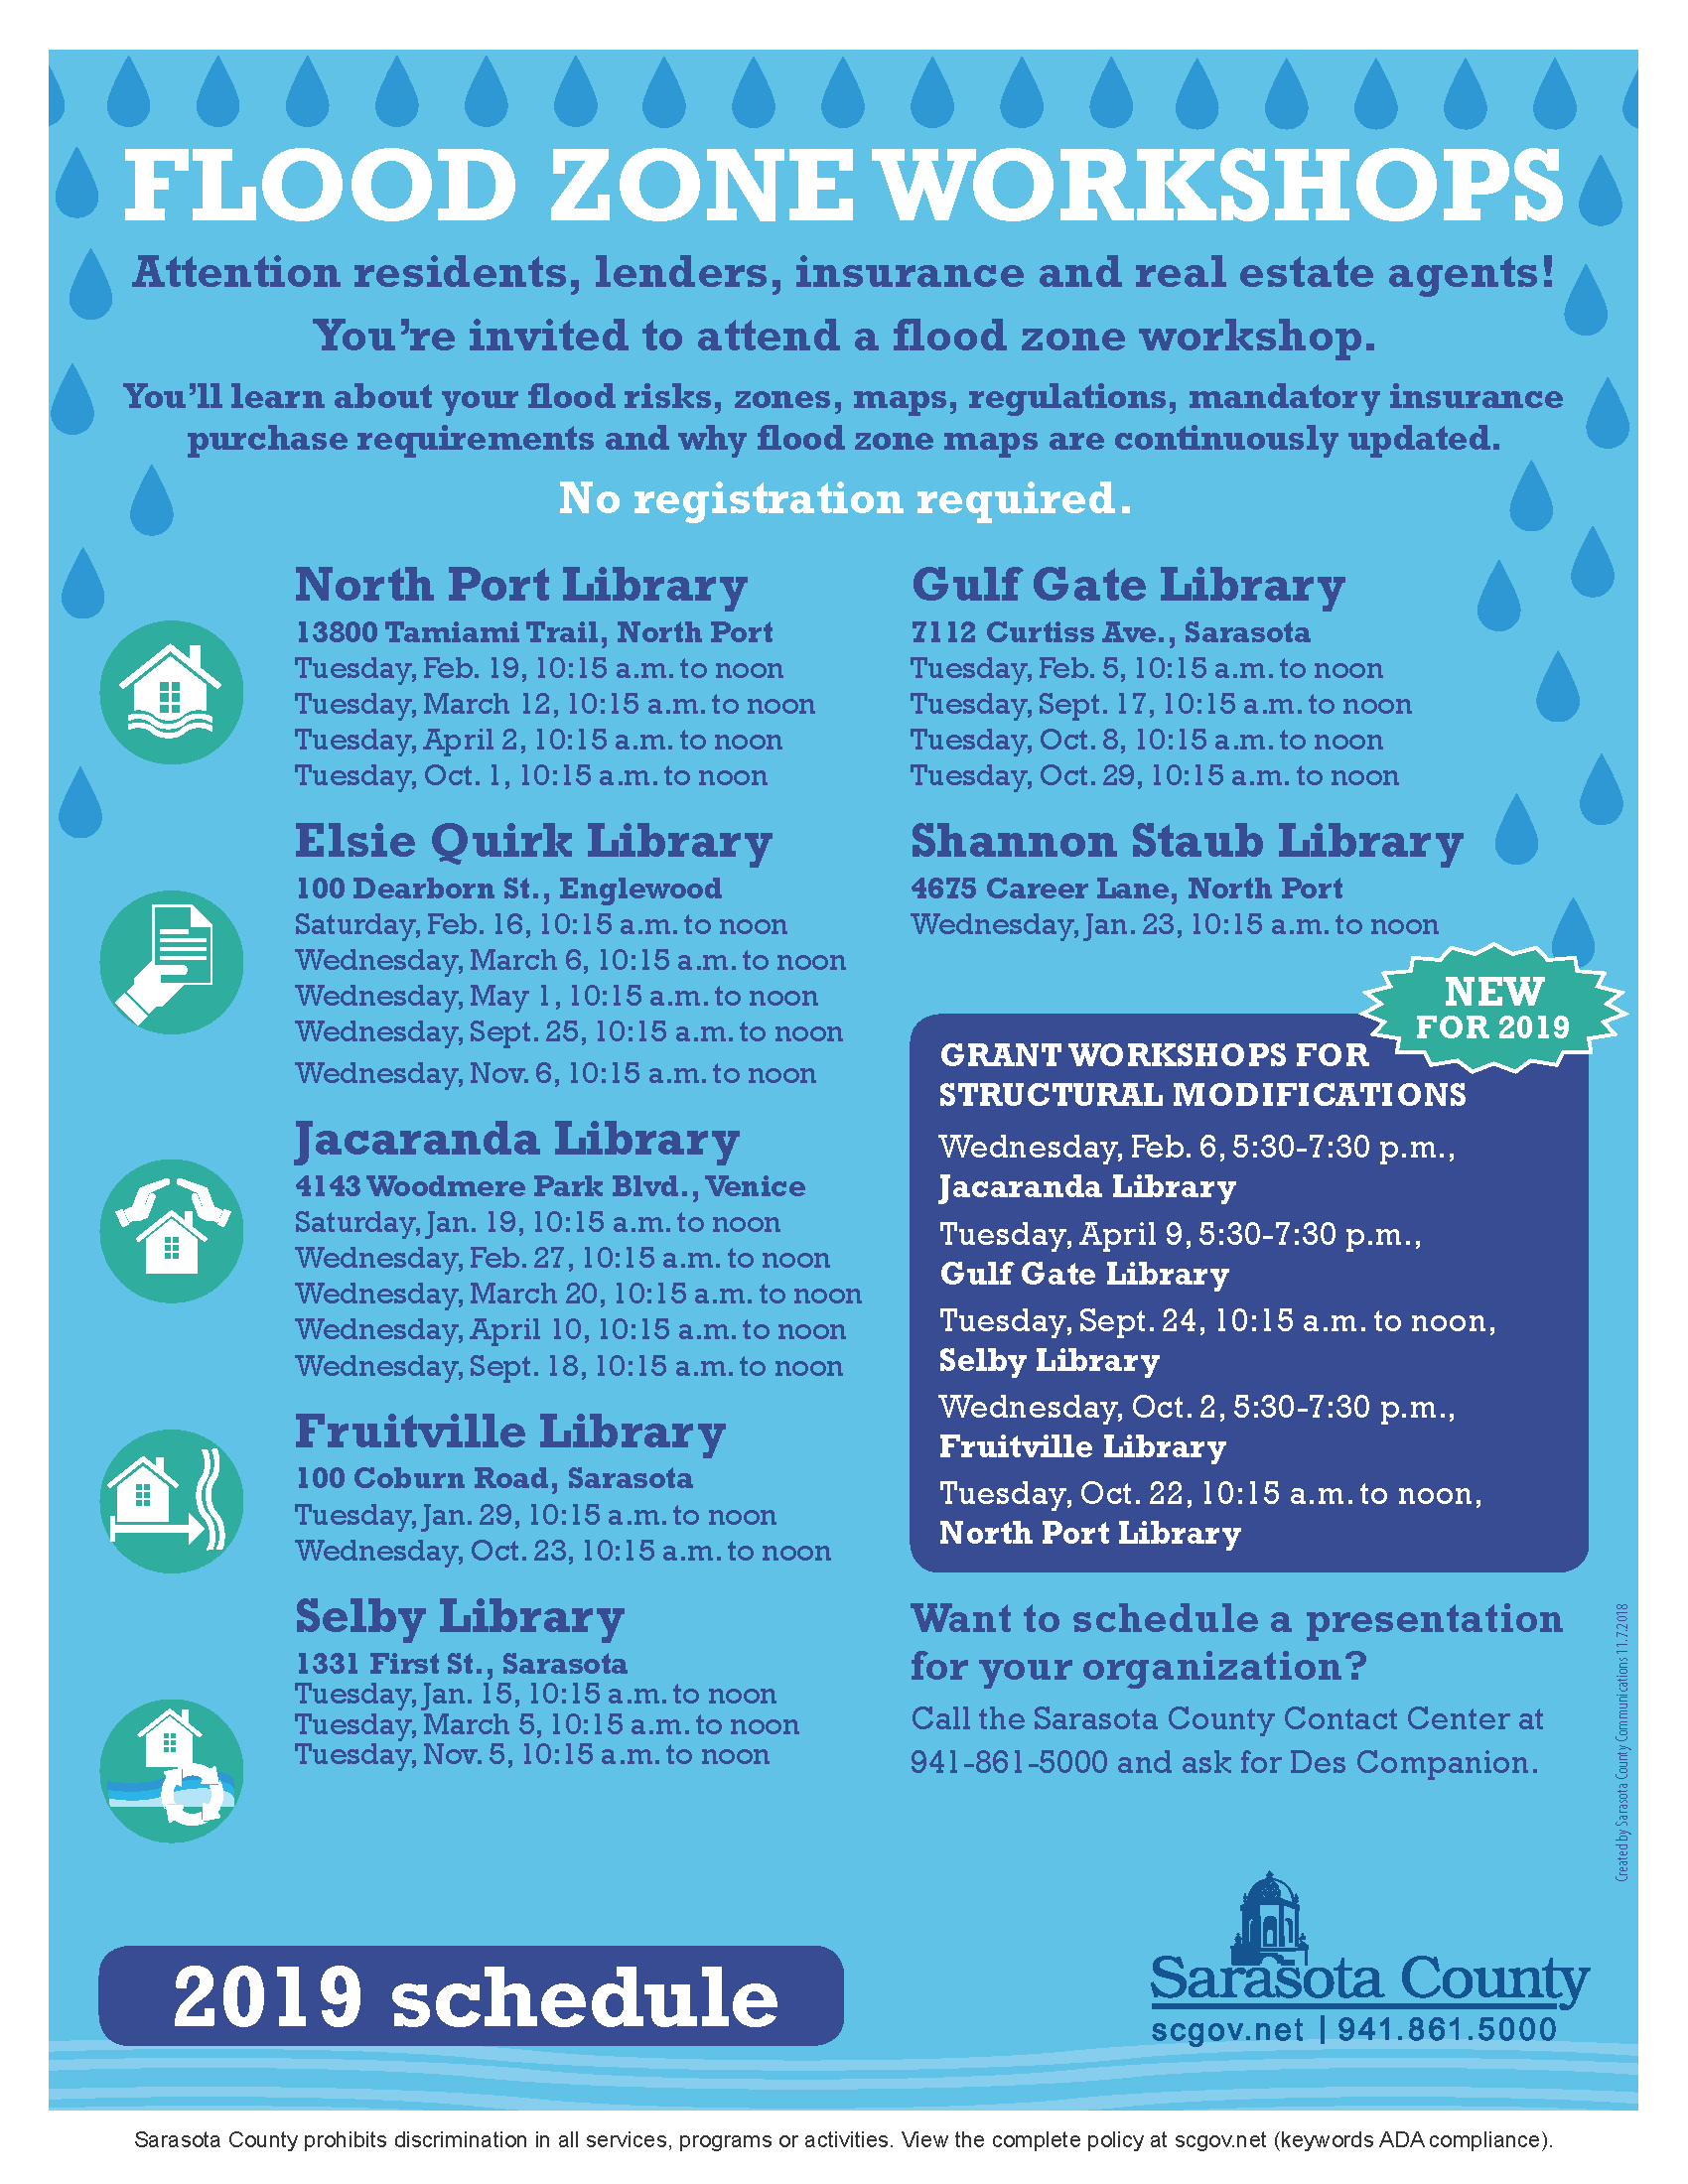 Flood Zone Workshop Flyer_2019_PRINT (002)